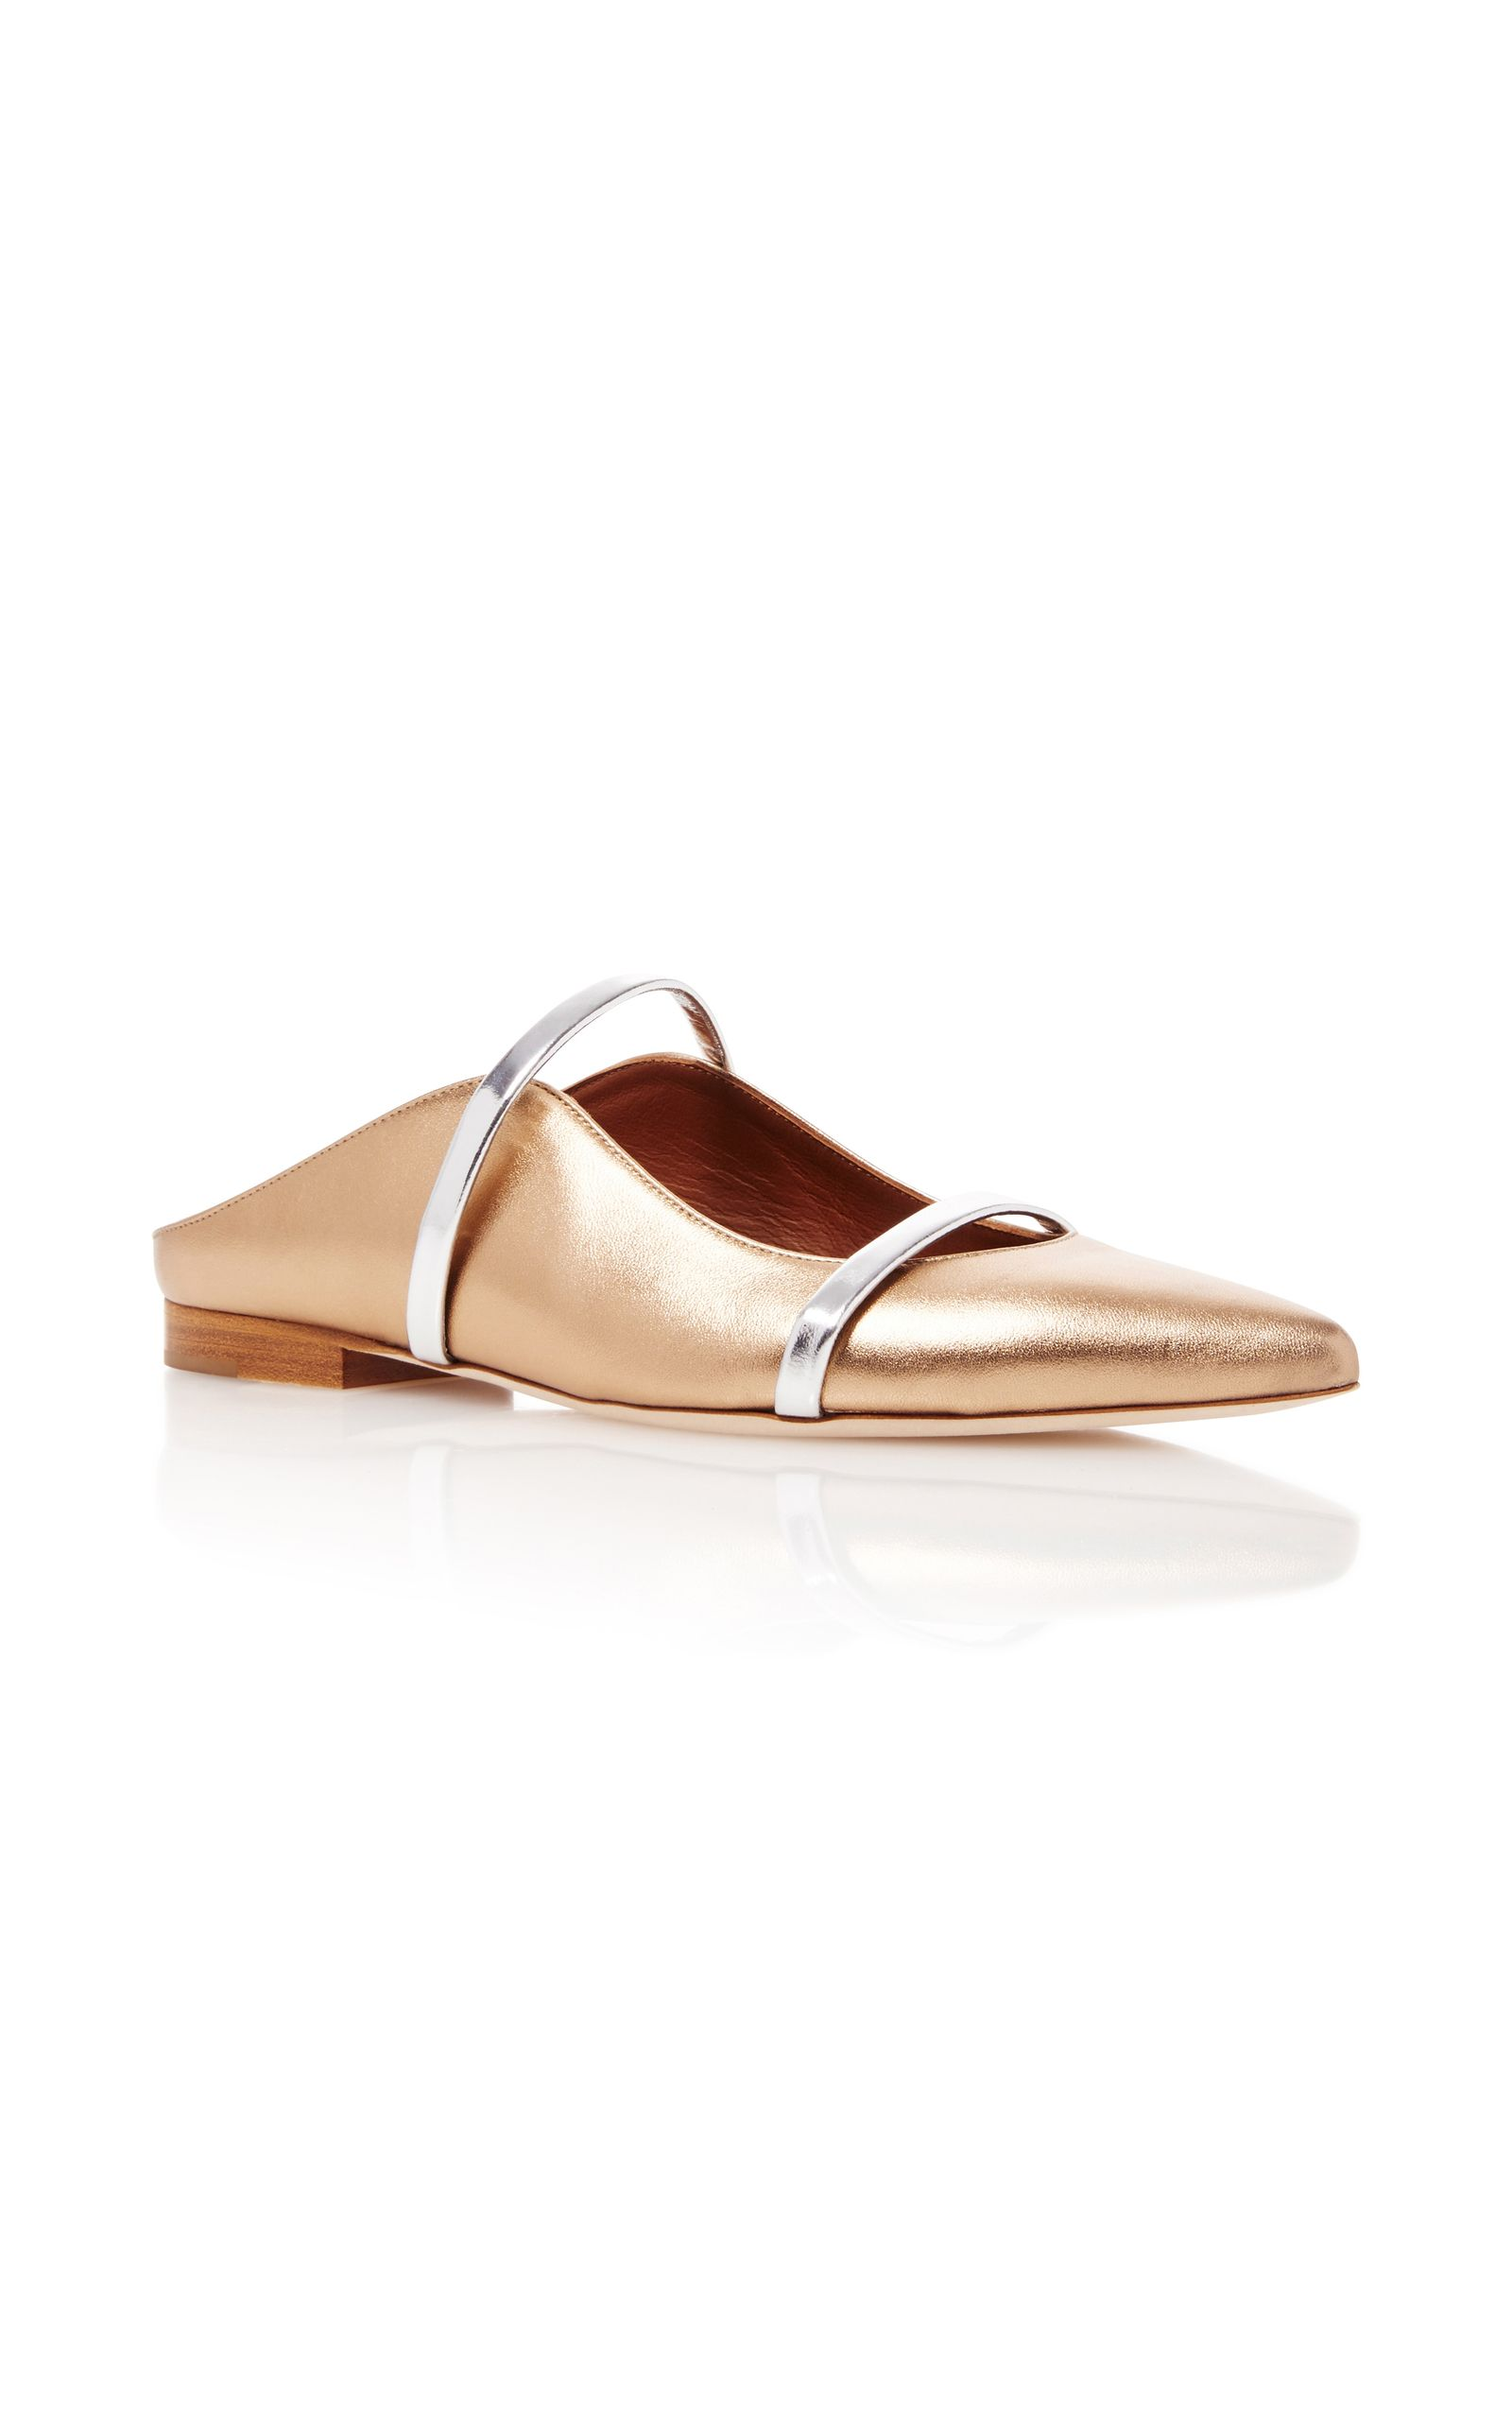 popular sale online many kinds of sale online Malone Souliers Maureen metallic leather slippers buy for sale aeBYTGG